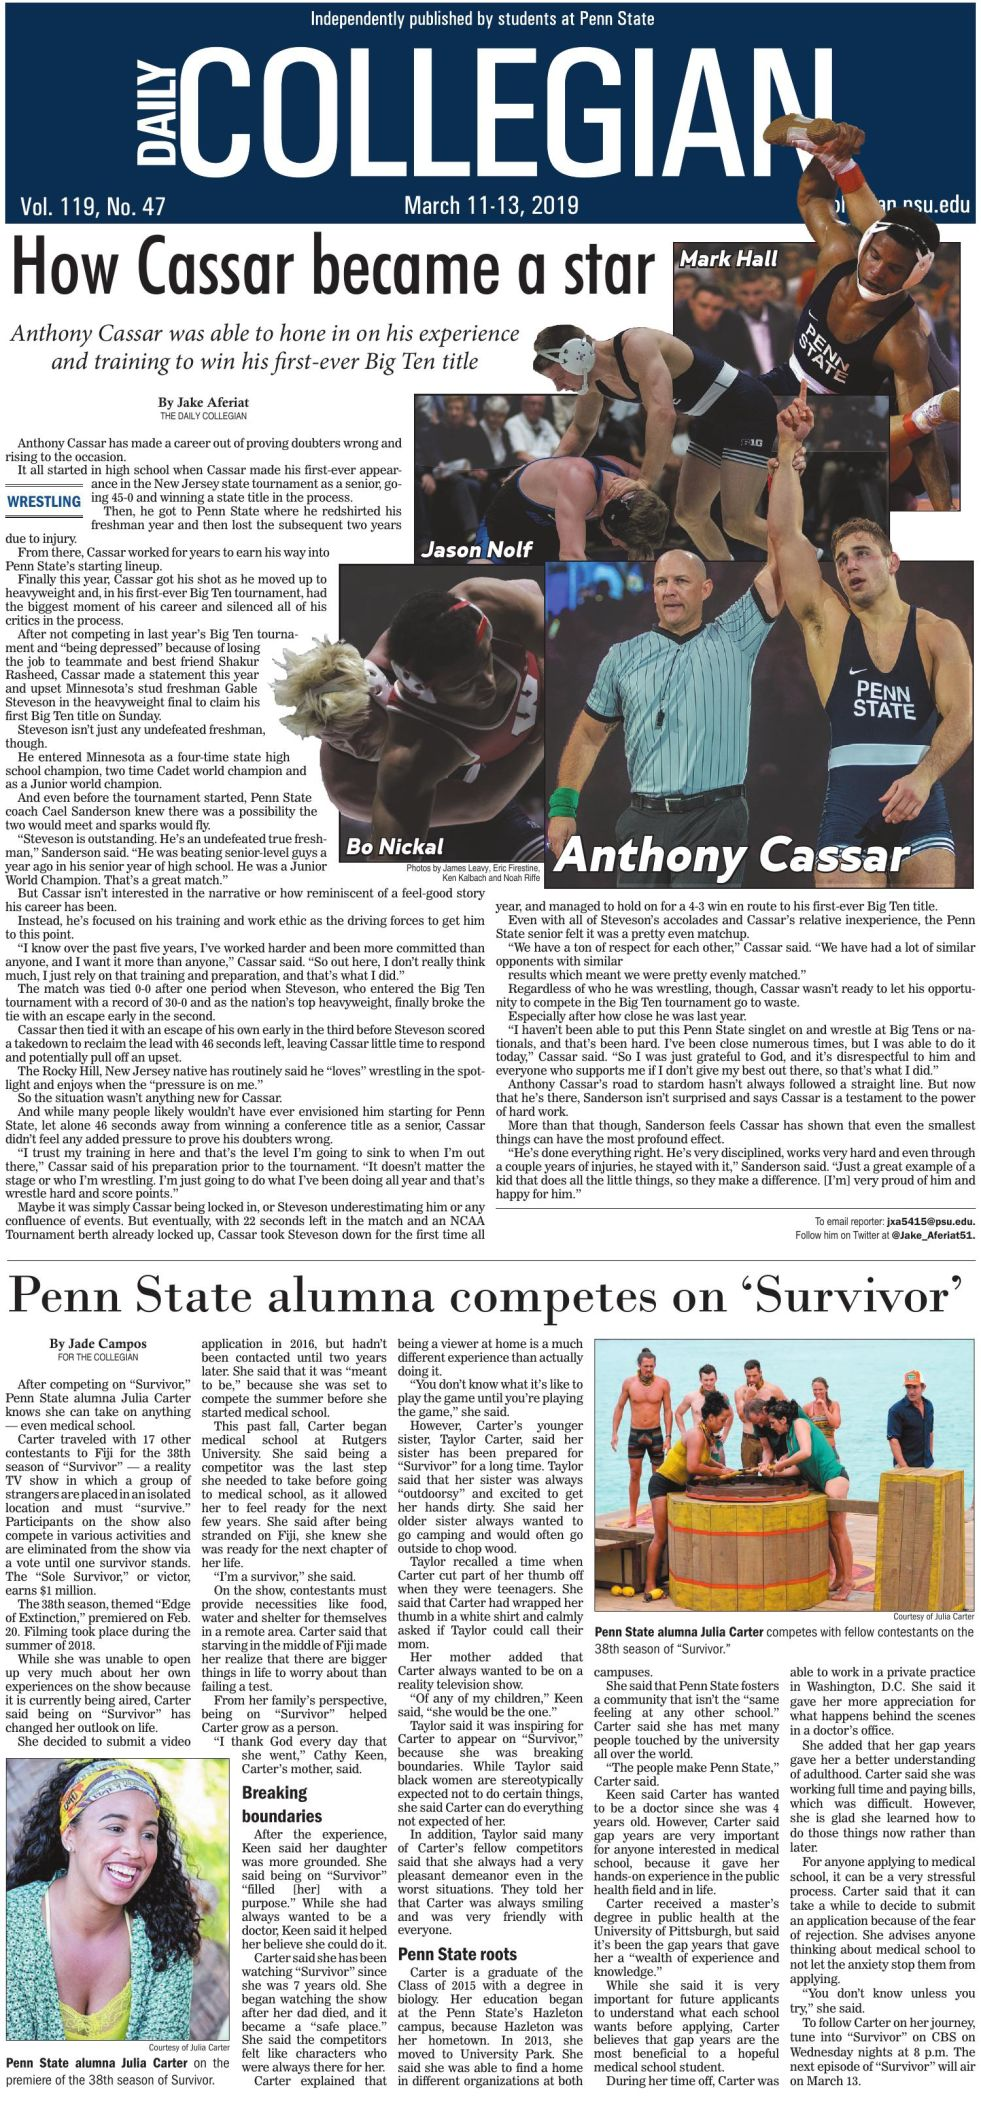 The Daily Collegian for March 11, 2019